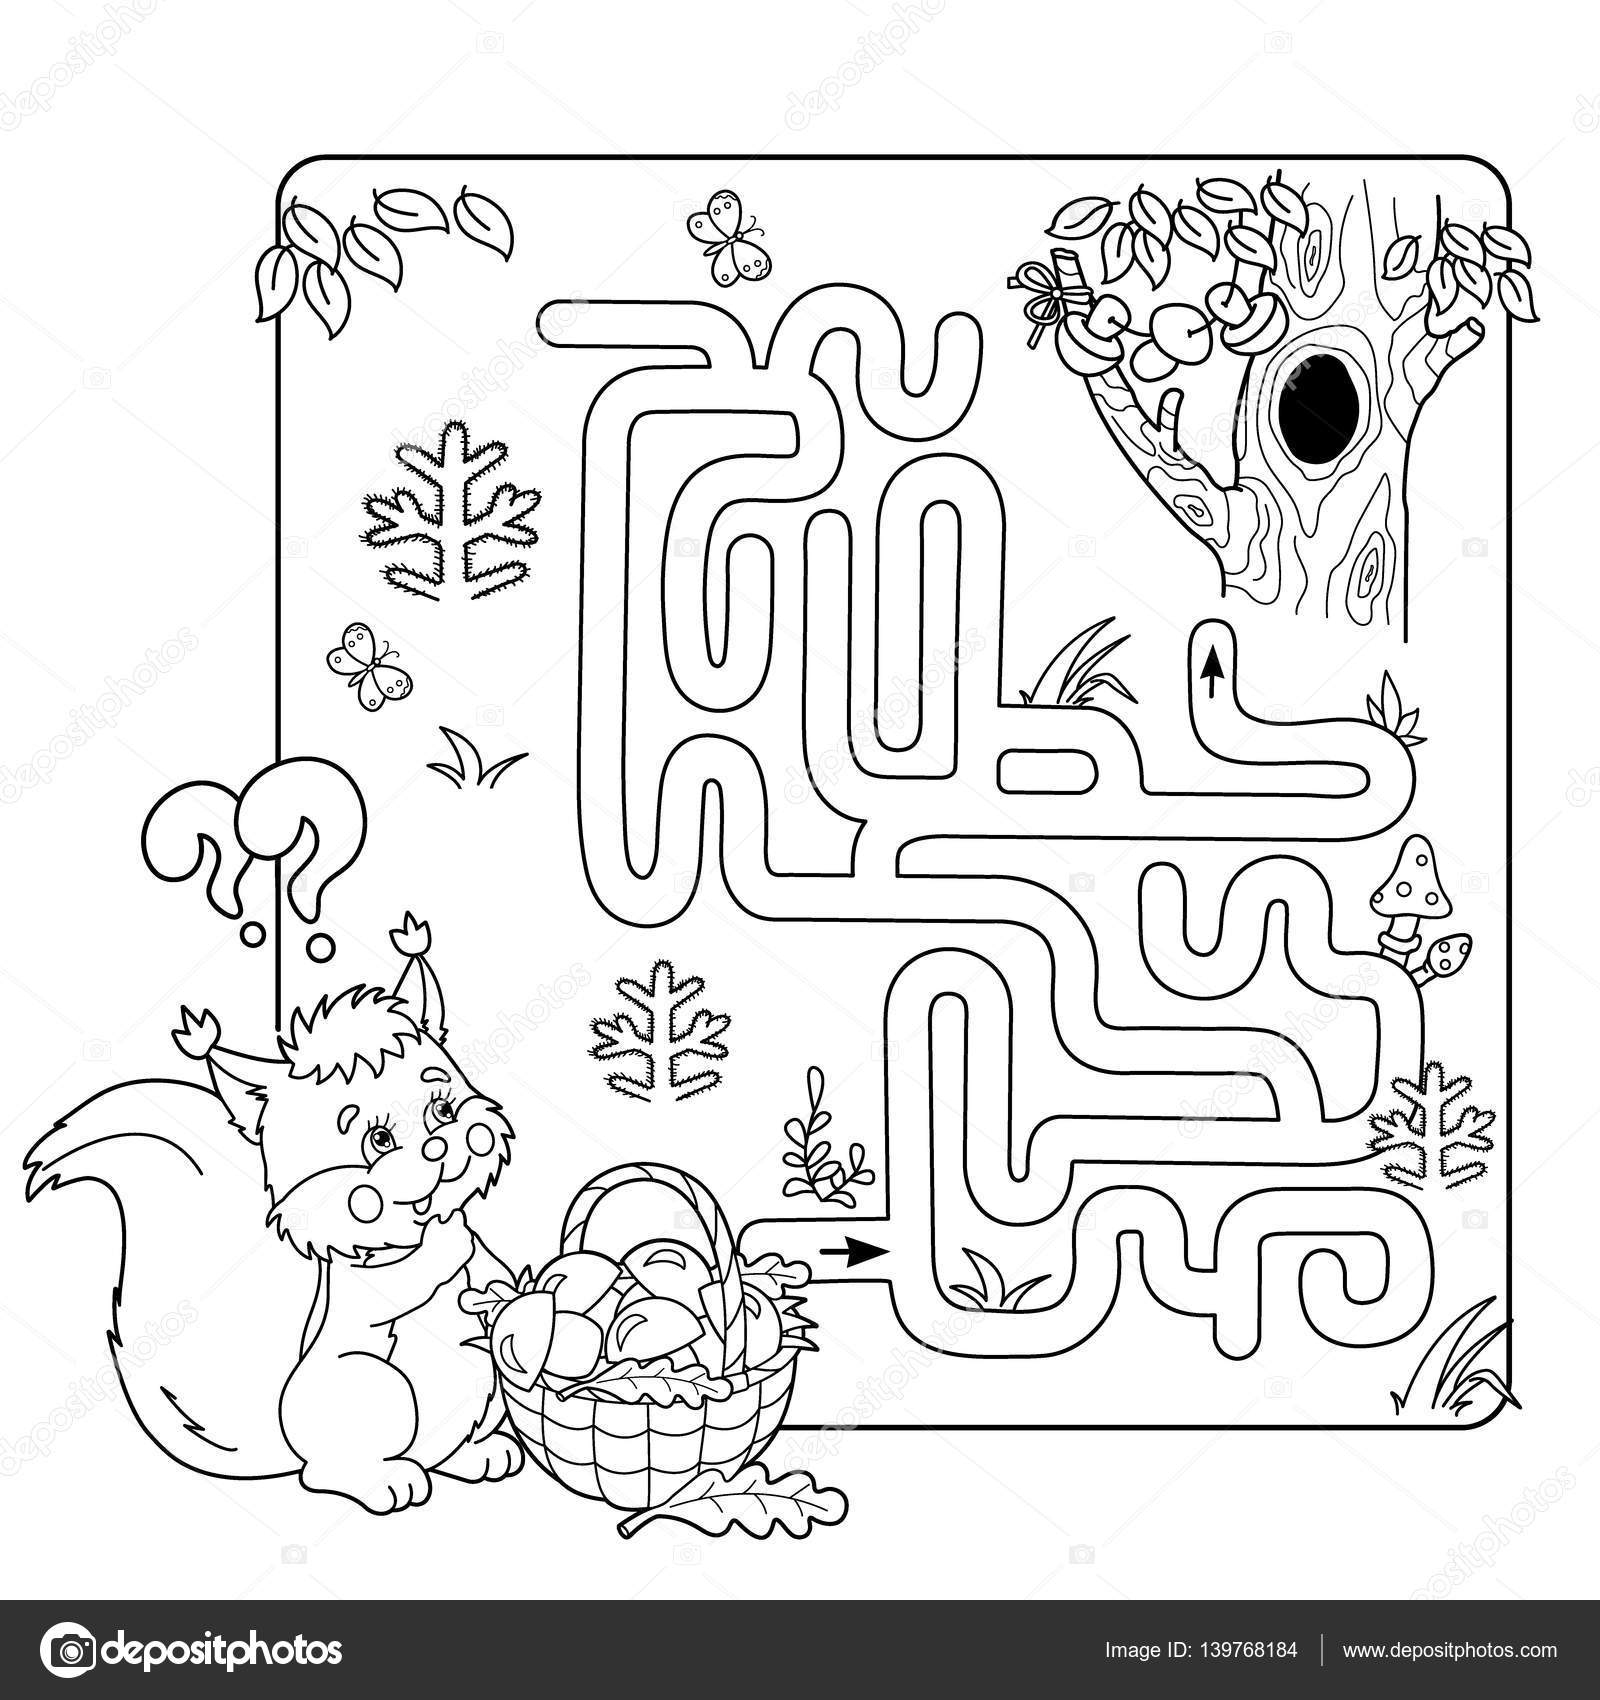 Cartoon Vector Illustration Of Education Maze Or Labyrinth Game For Preschool Children Puzzle Coloring